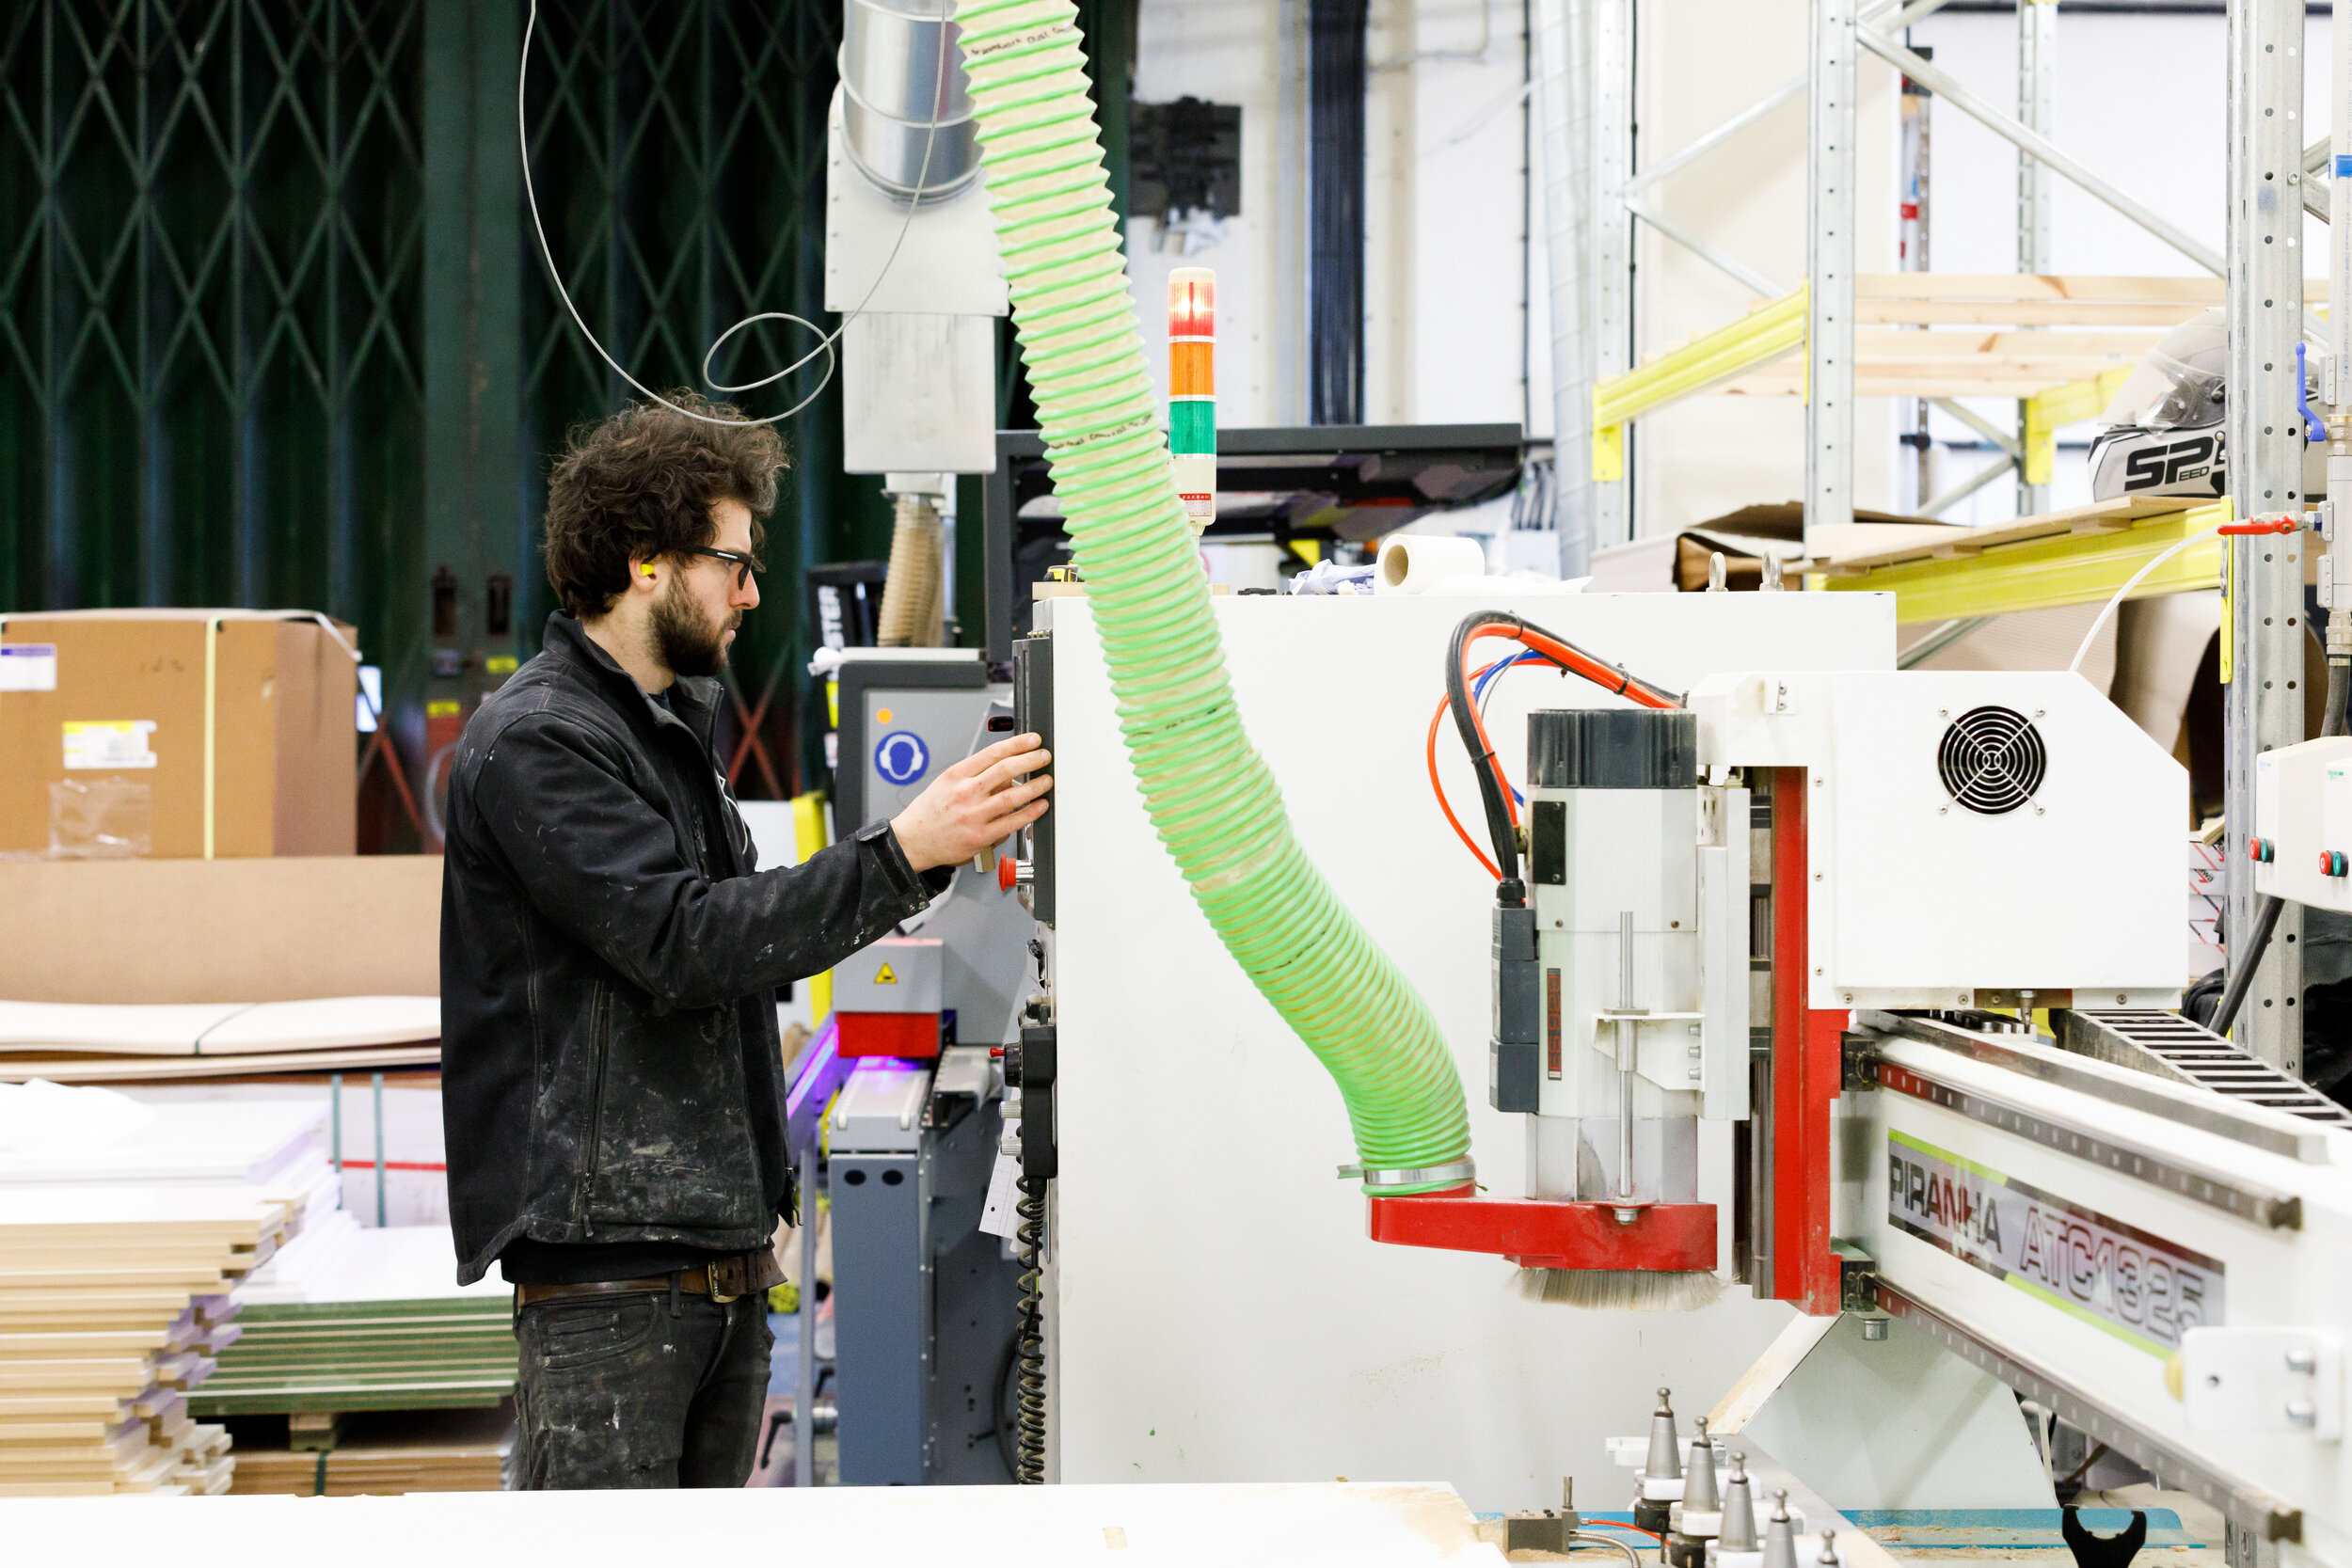 - Workshop manager Rich programming the CNC machine